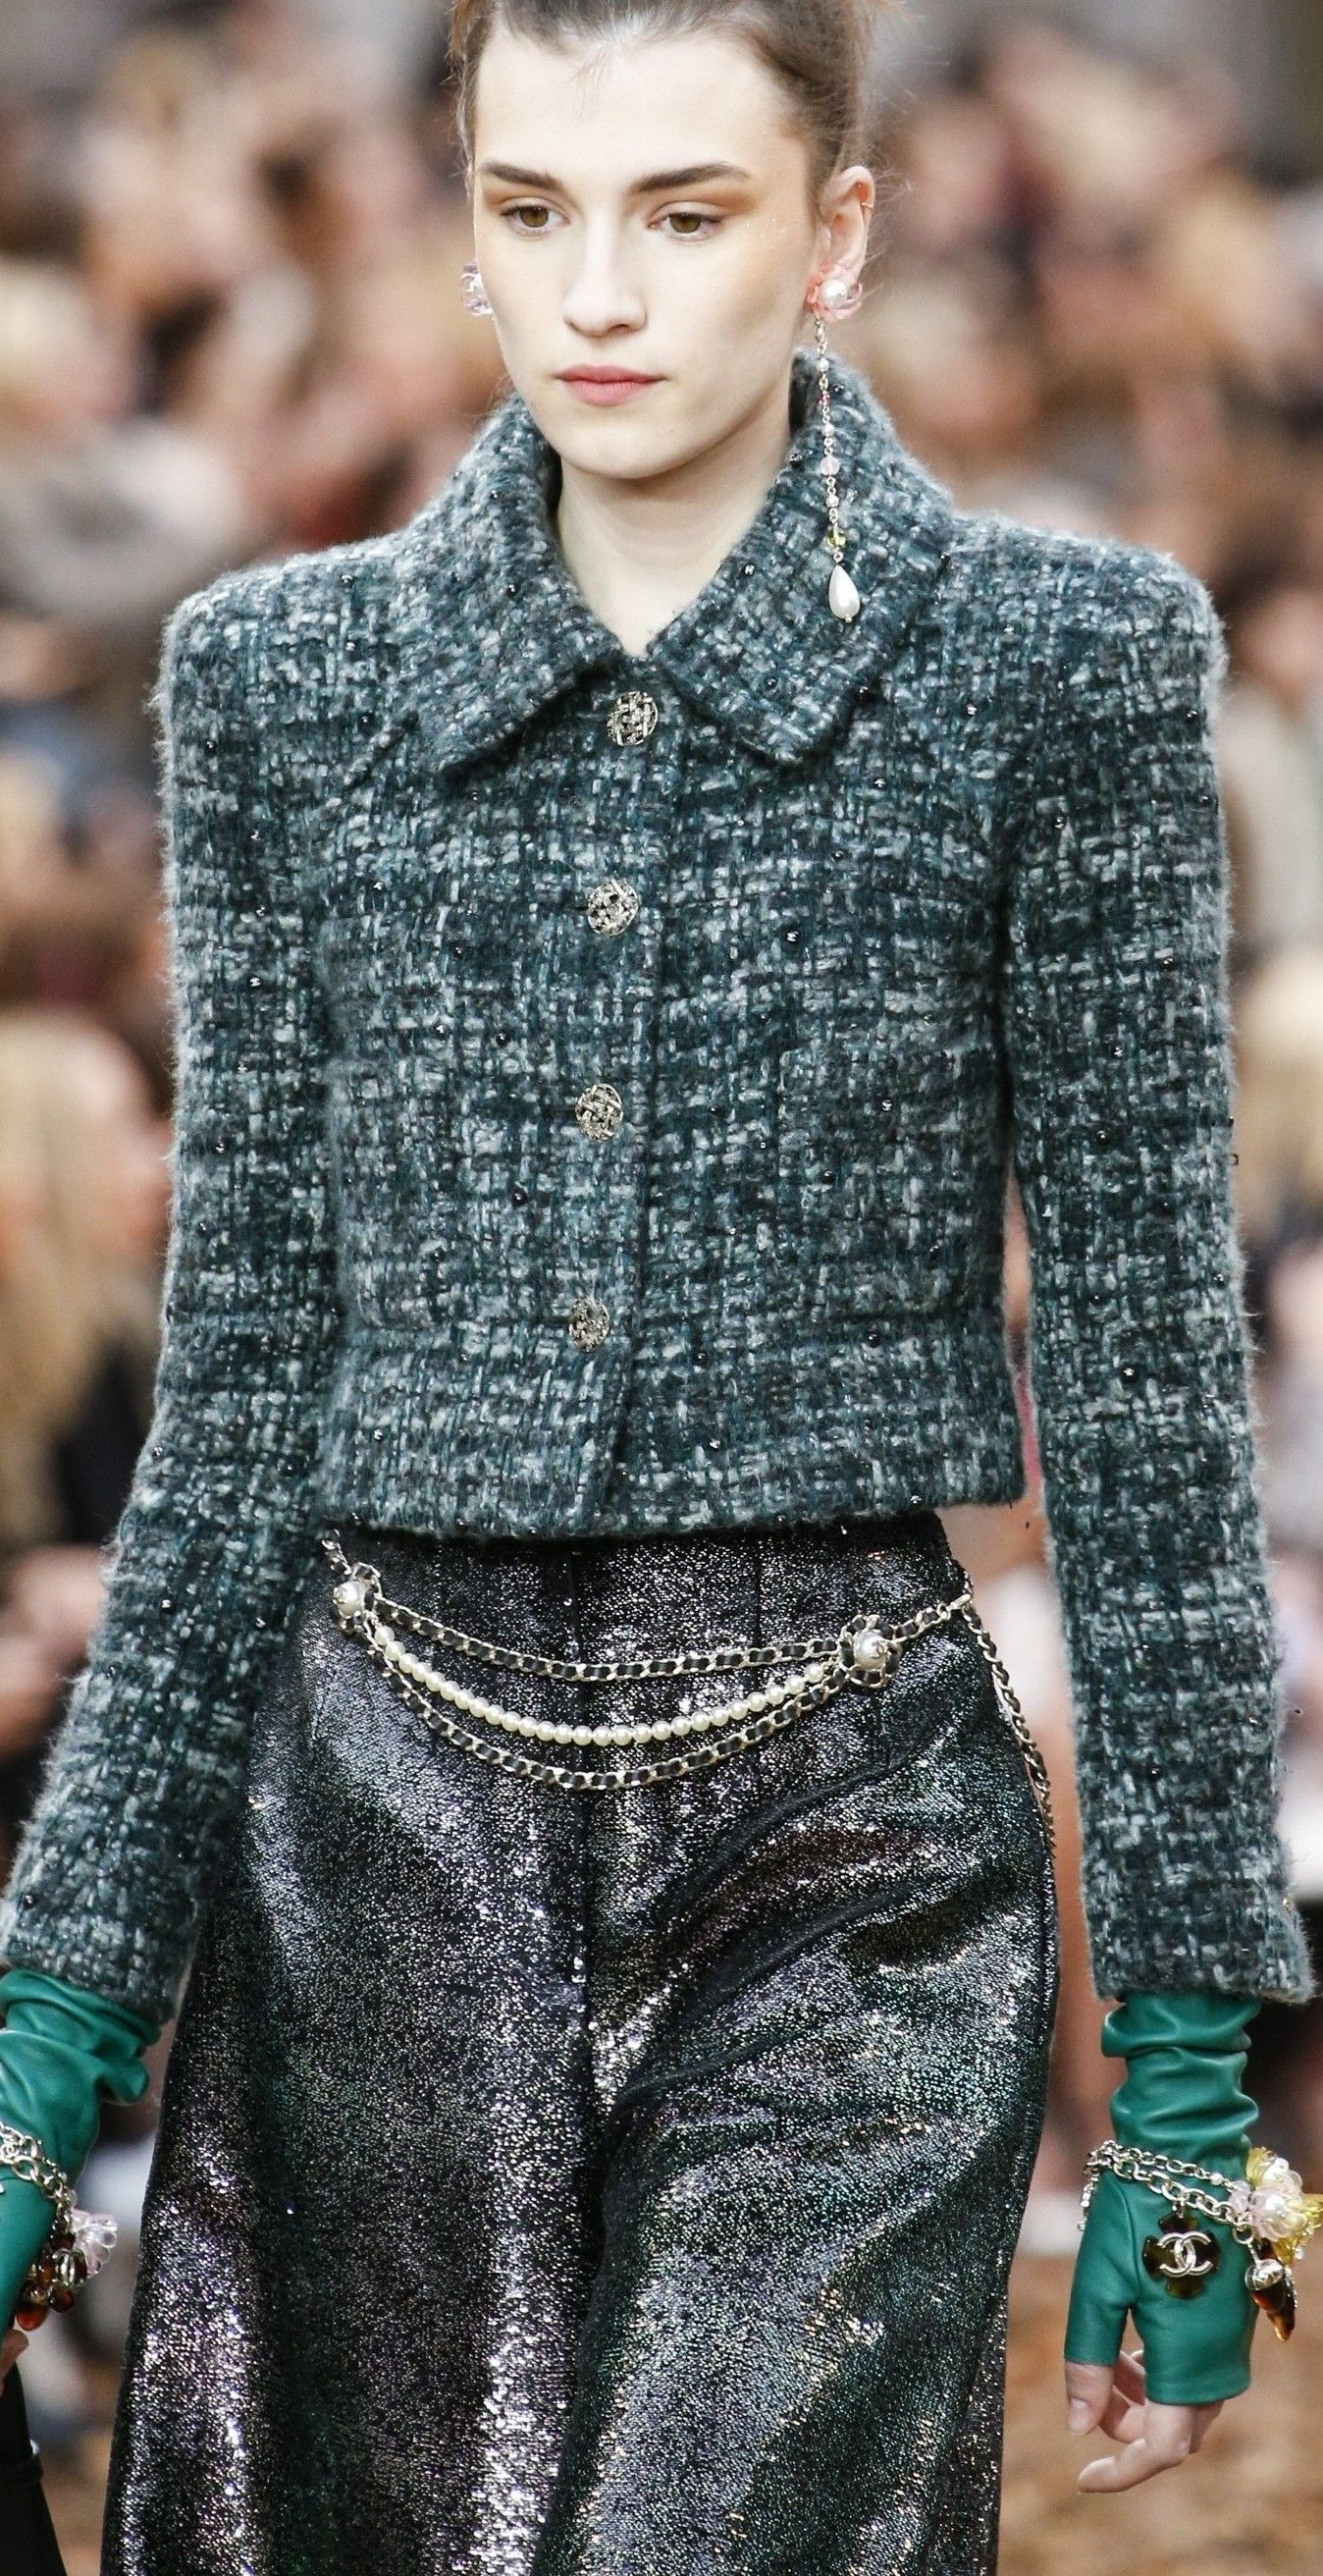 b5235283cfcd2f Chanel Fall 2018 Ready-to-Wear Fashion Show | Coco Chanel | Moda ...